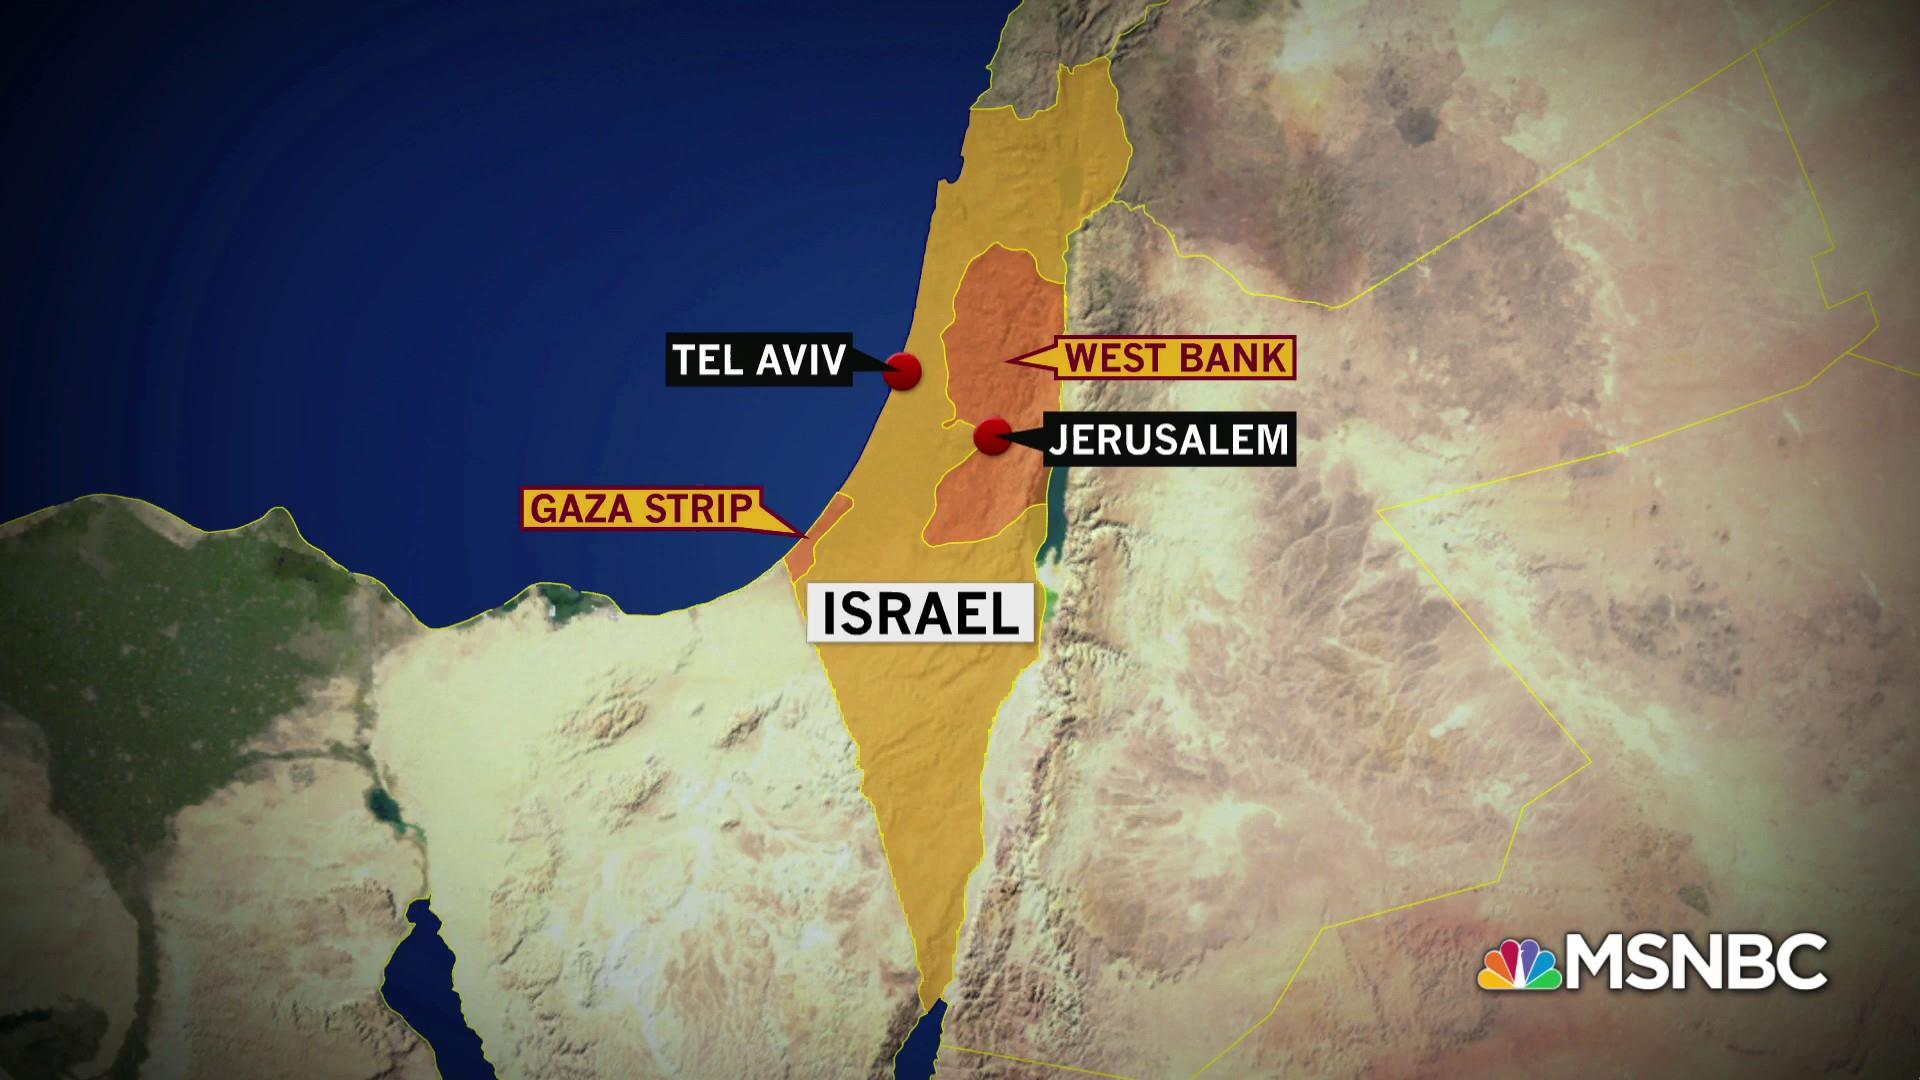 'Mistake' may have led to new tensions between Israel, Hamas